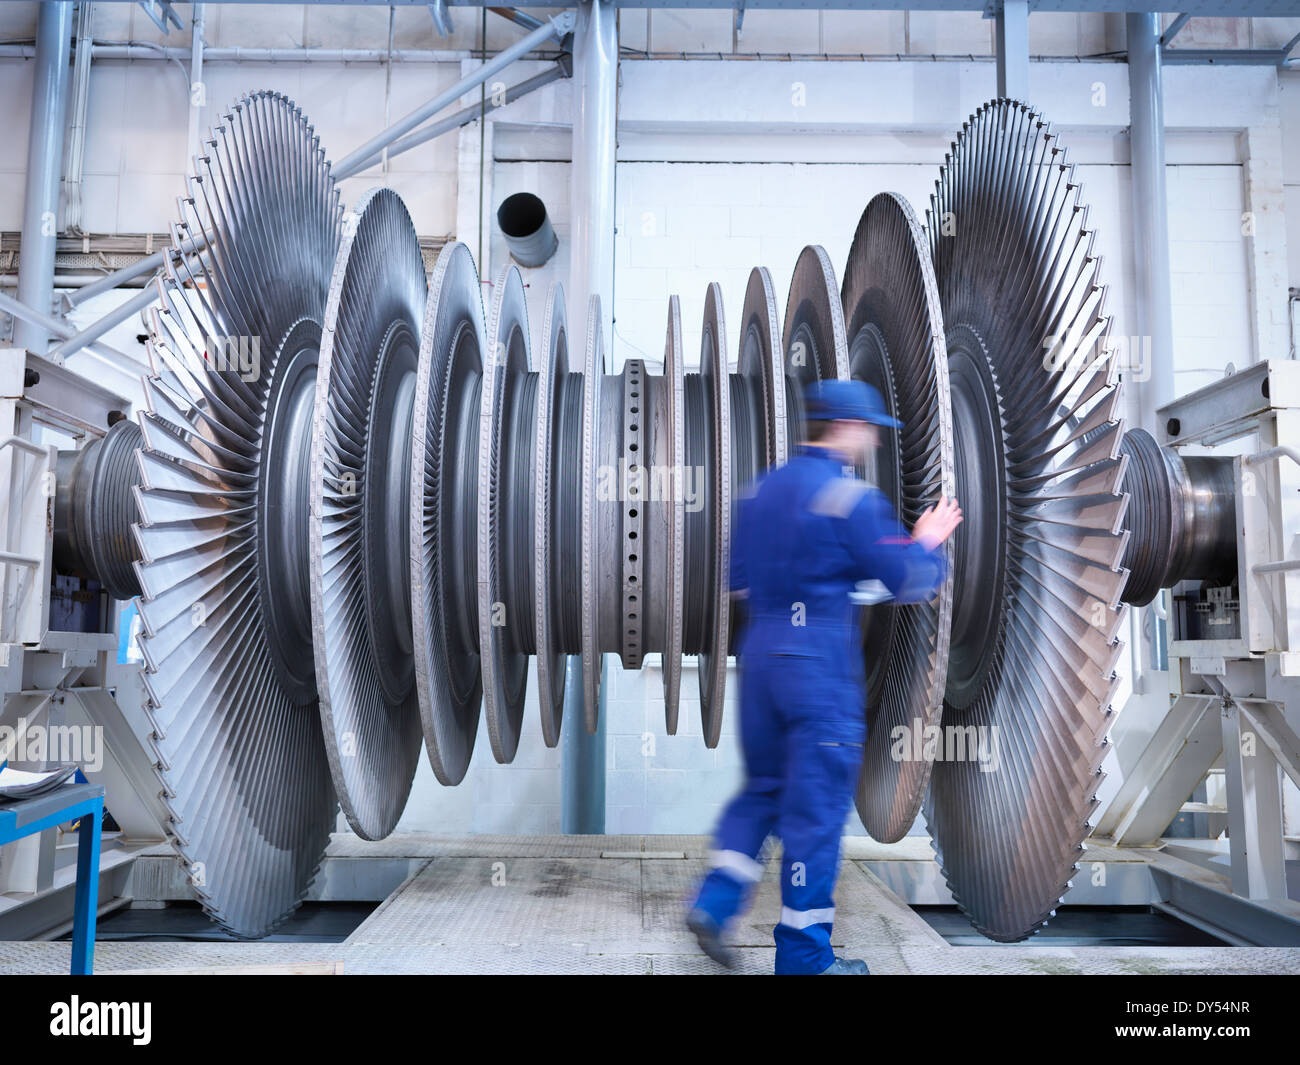 Engineer inspecting steam turbine pales dans la baie de l'atelier de réparation Photo Stock